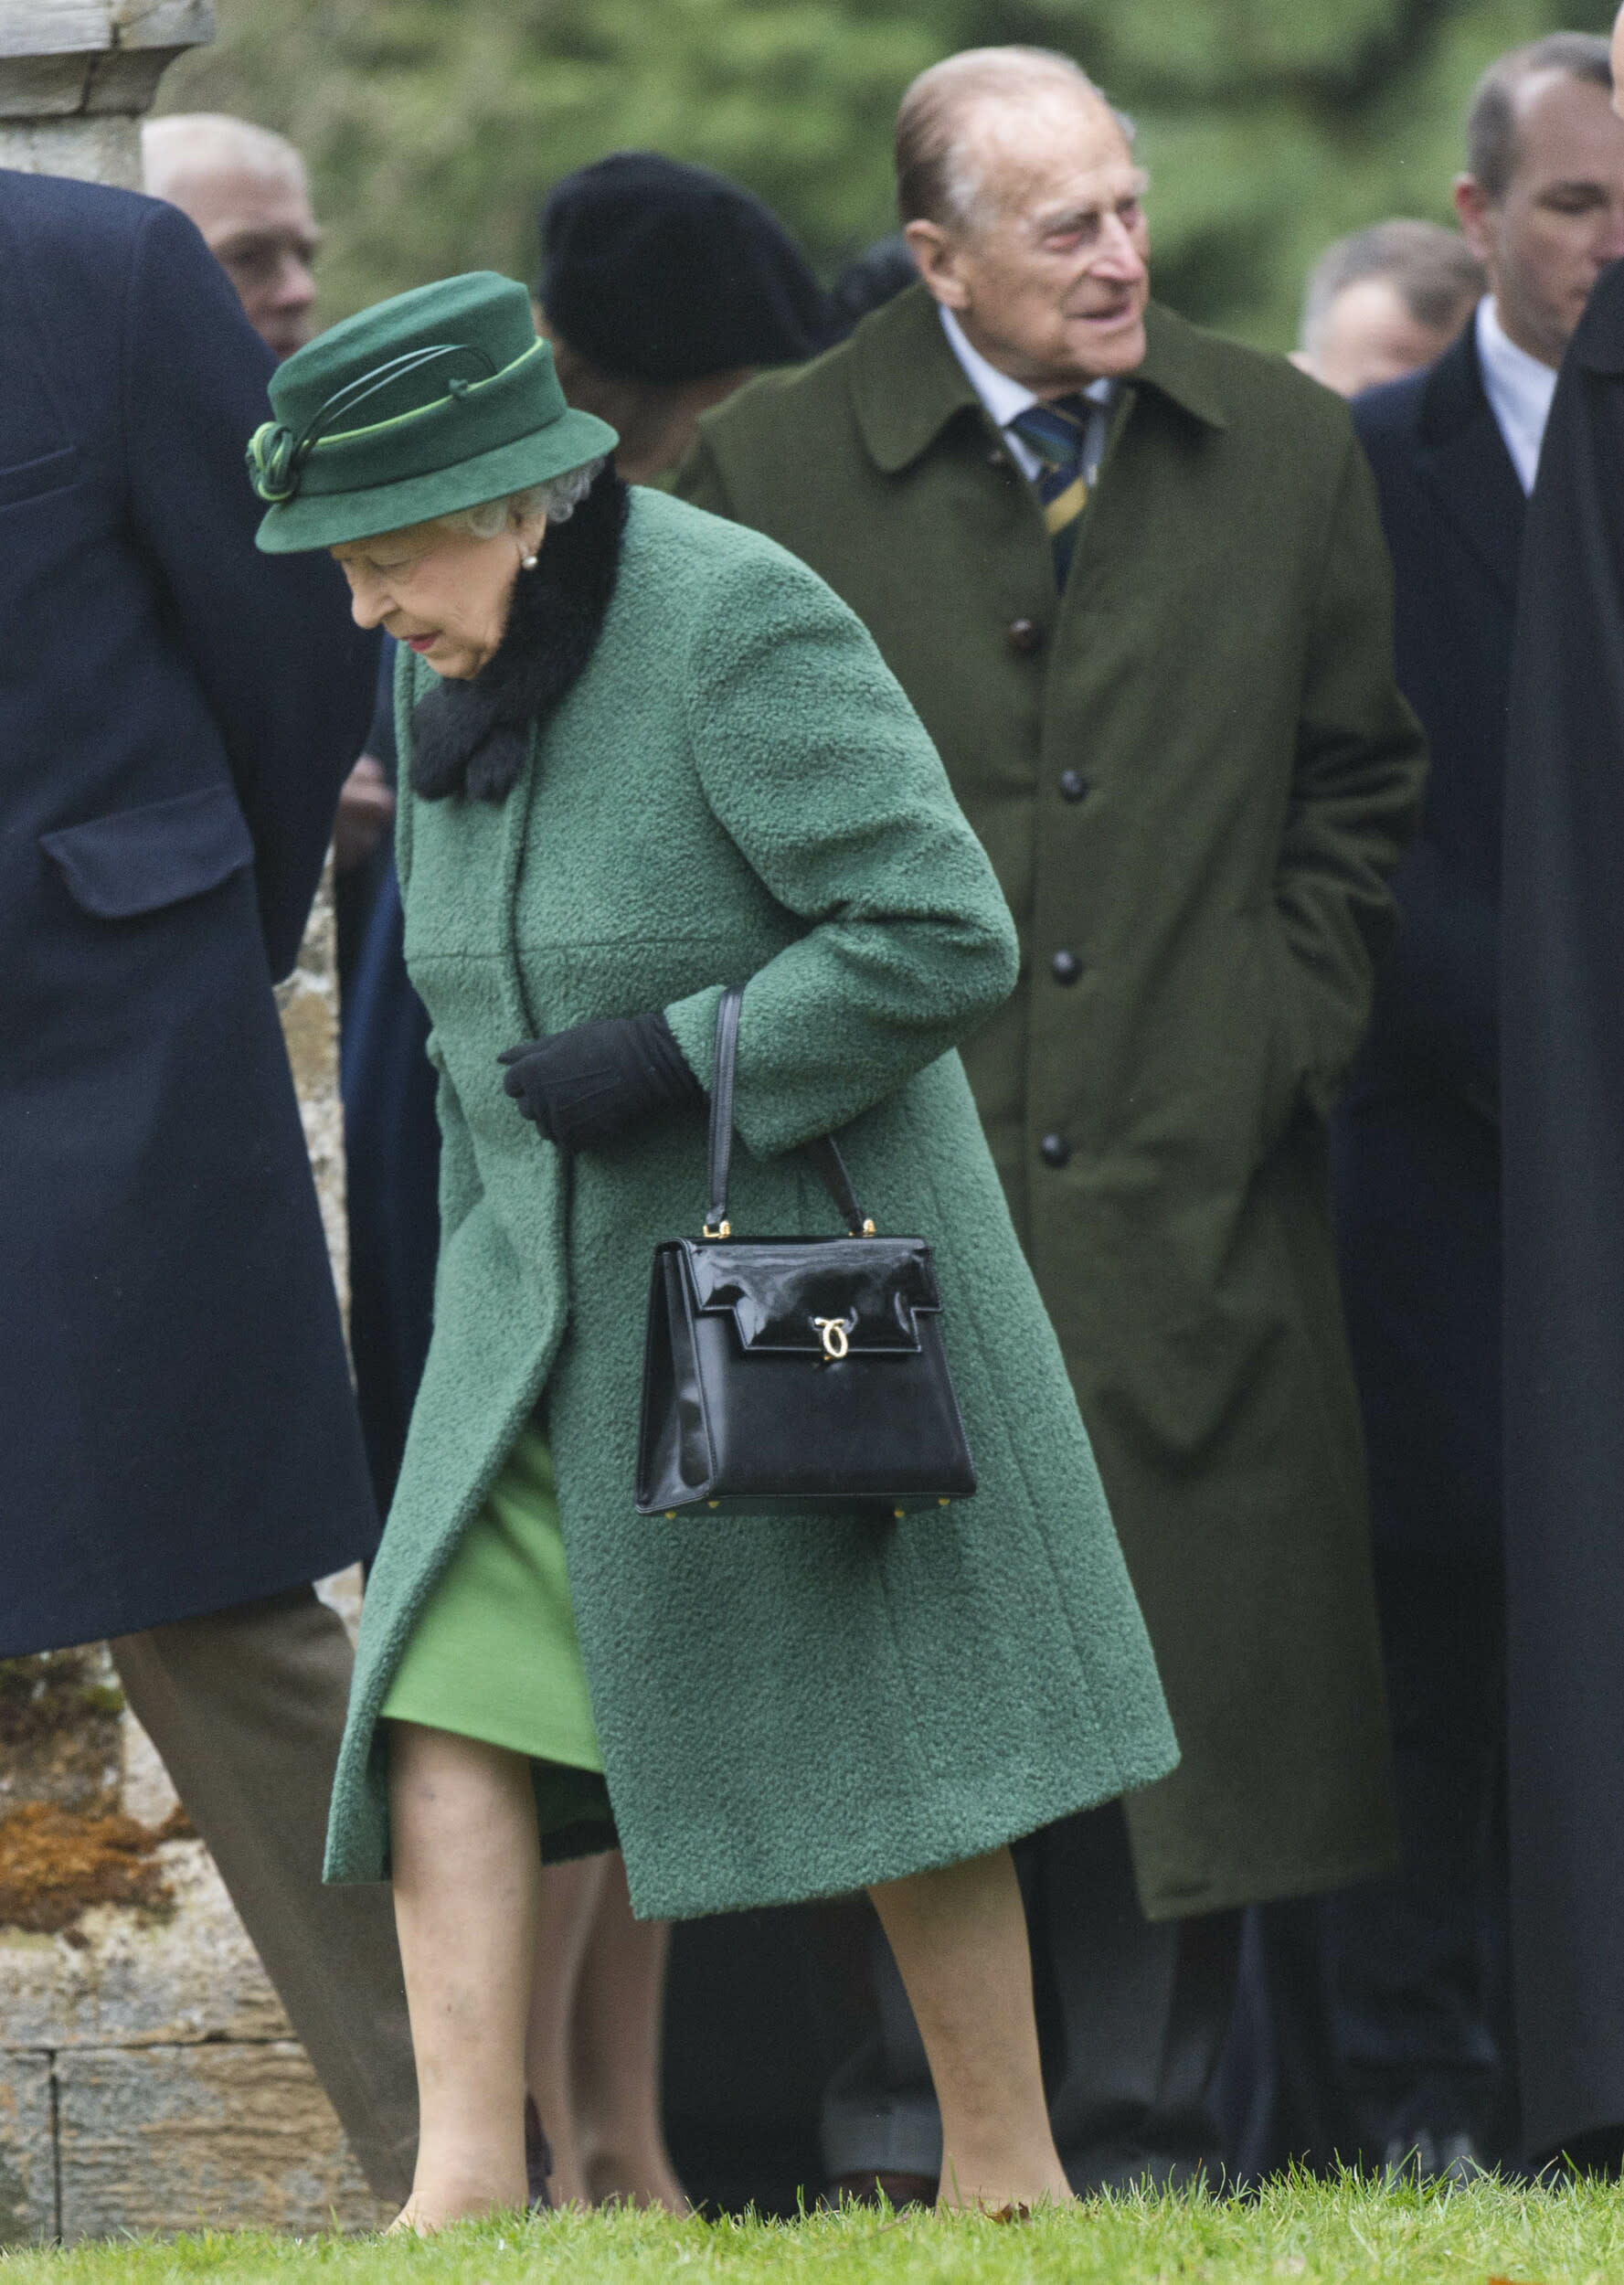 Photo by: KGC-178/STAR MAX/IPx 2018 1/21/18 Queen Elizabeth II, Prince Philip, Prince Andrew, Princess Beatrice and Princess Eugenie arrive at St Lawrence Church in Castle Rising, Norfolk, England.